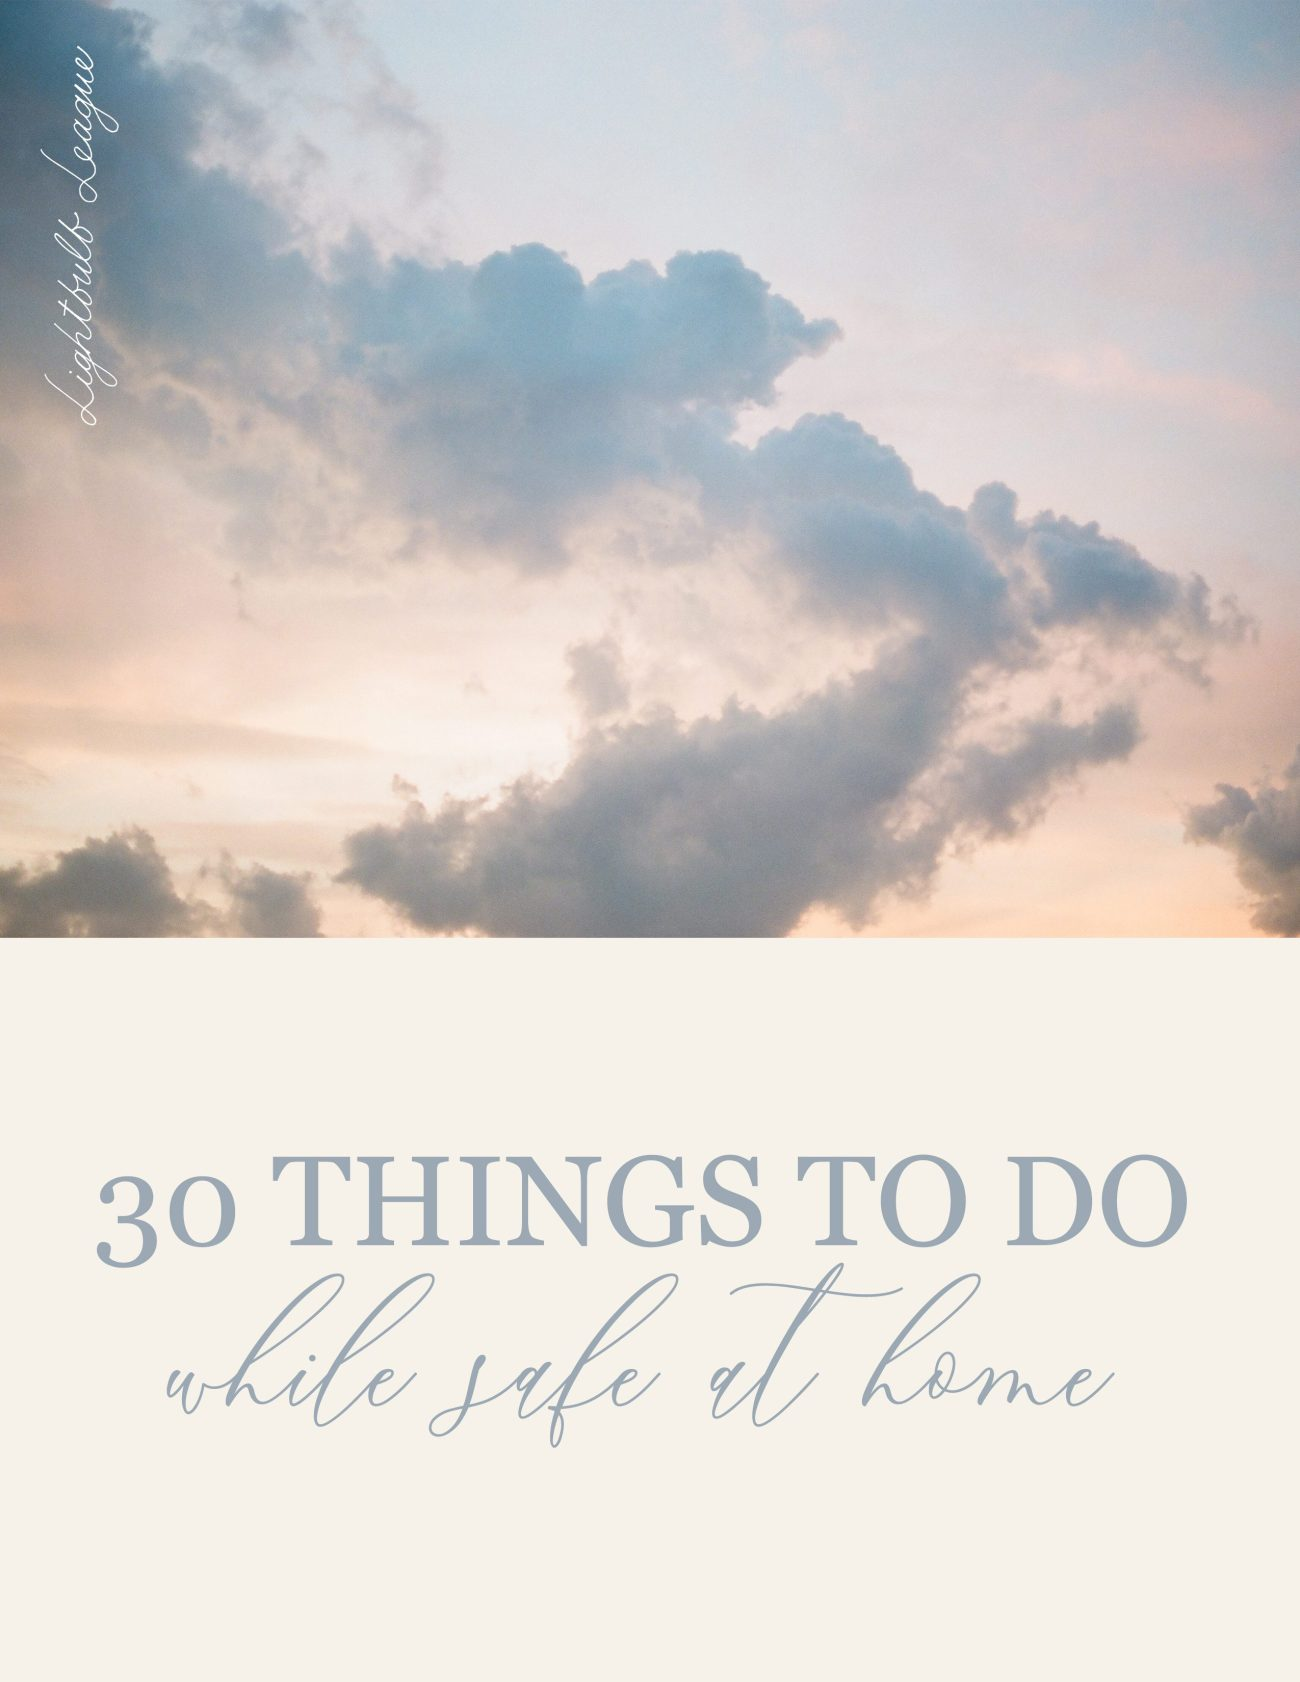 30 Things to do while stuck at home